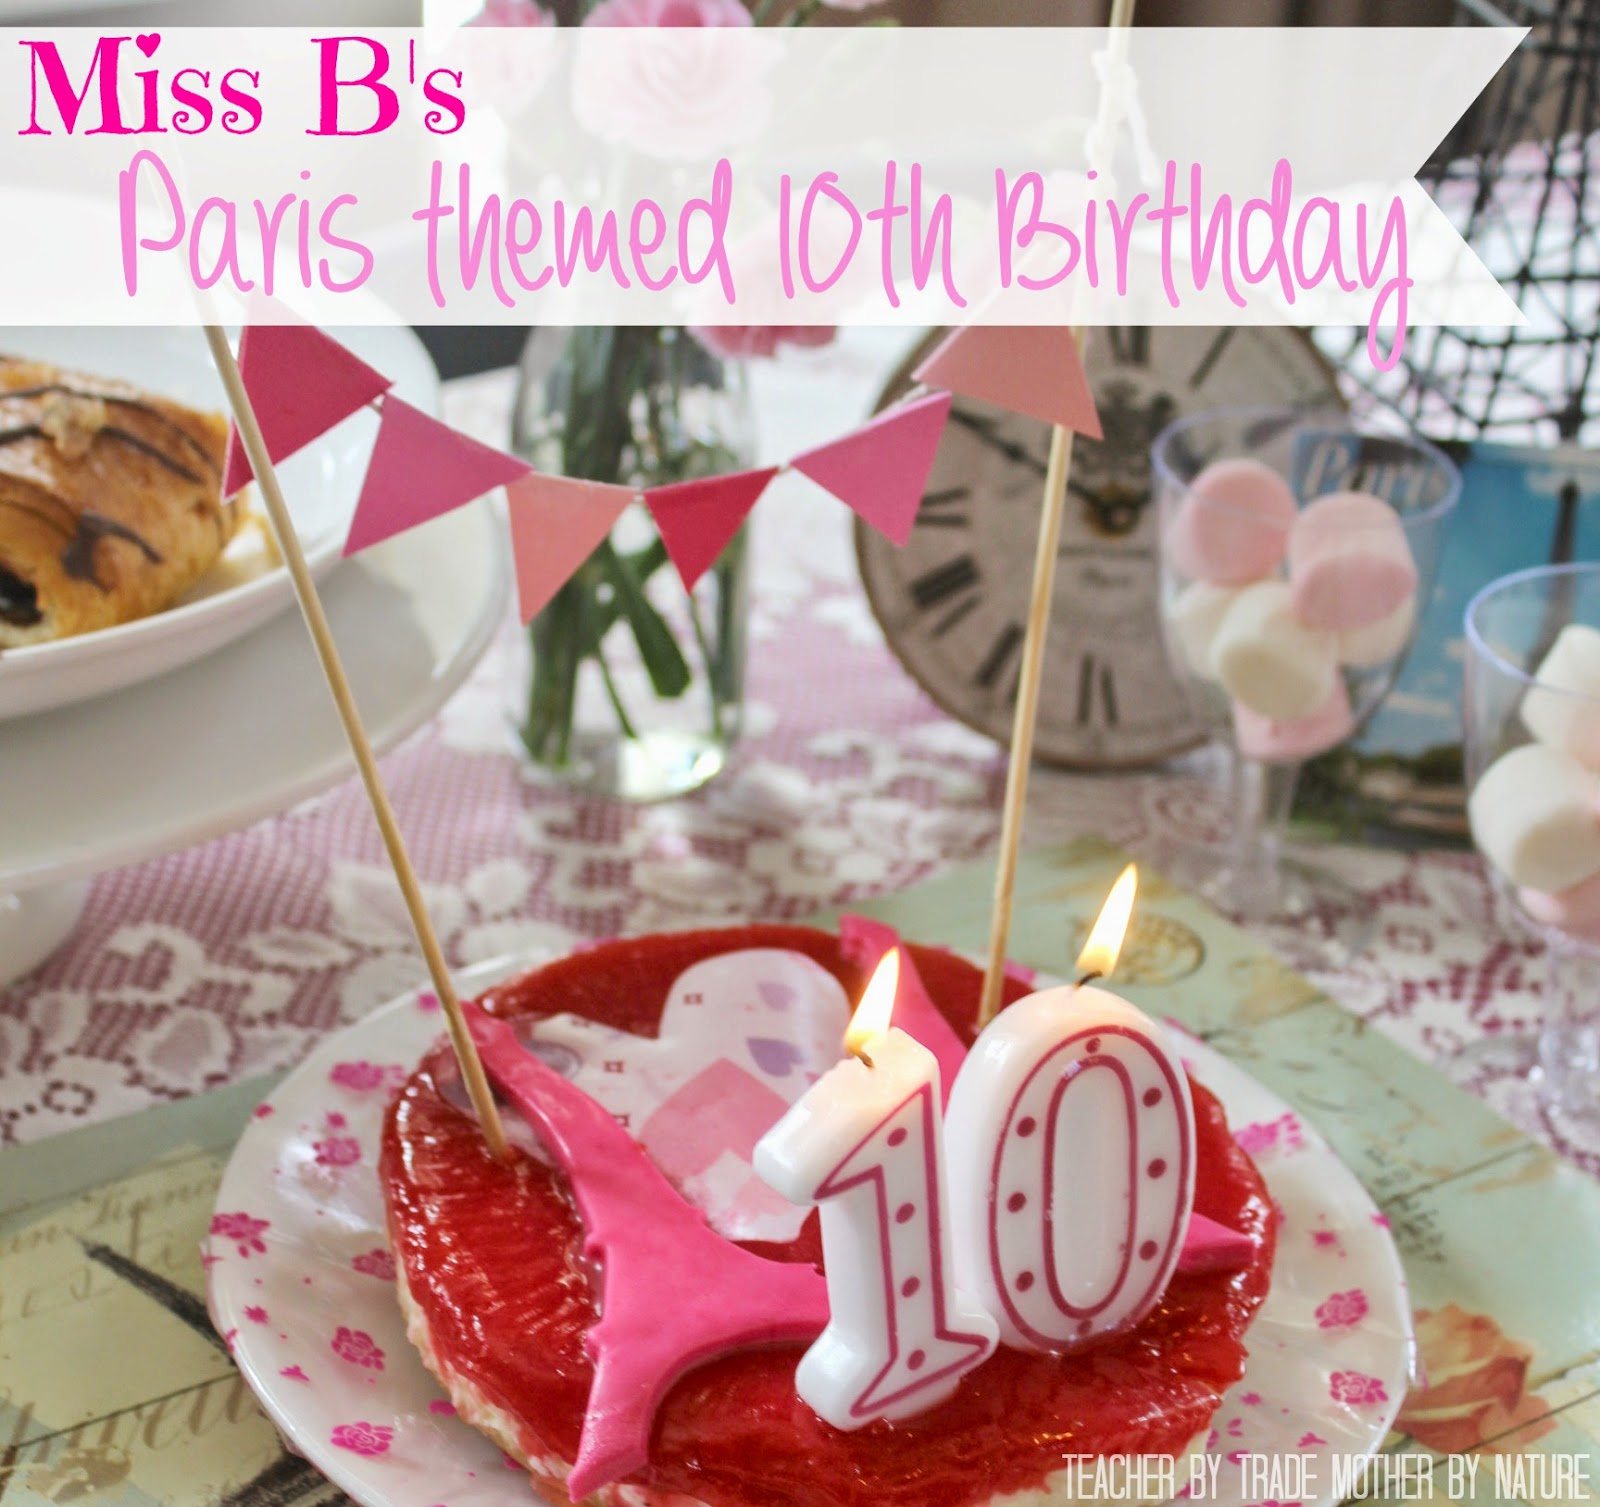 Kids Parties Miss Bs Paris Themed 10th Birthday Teacher By Trade